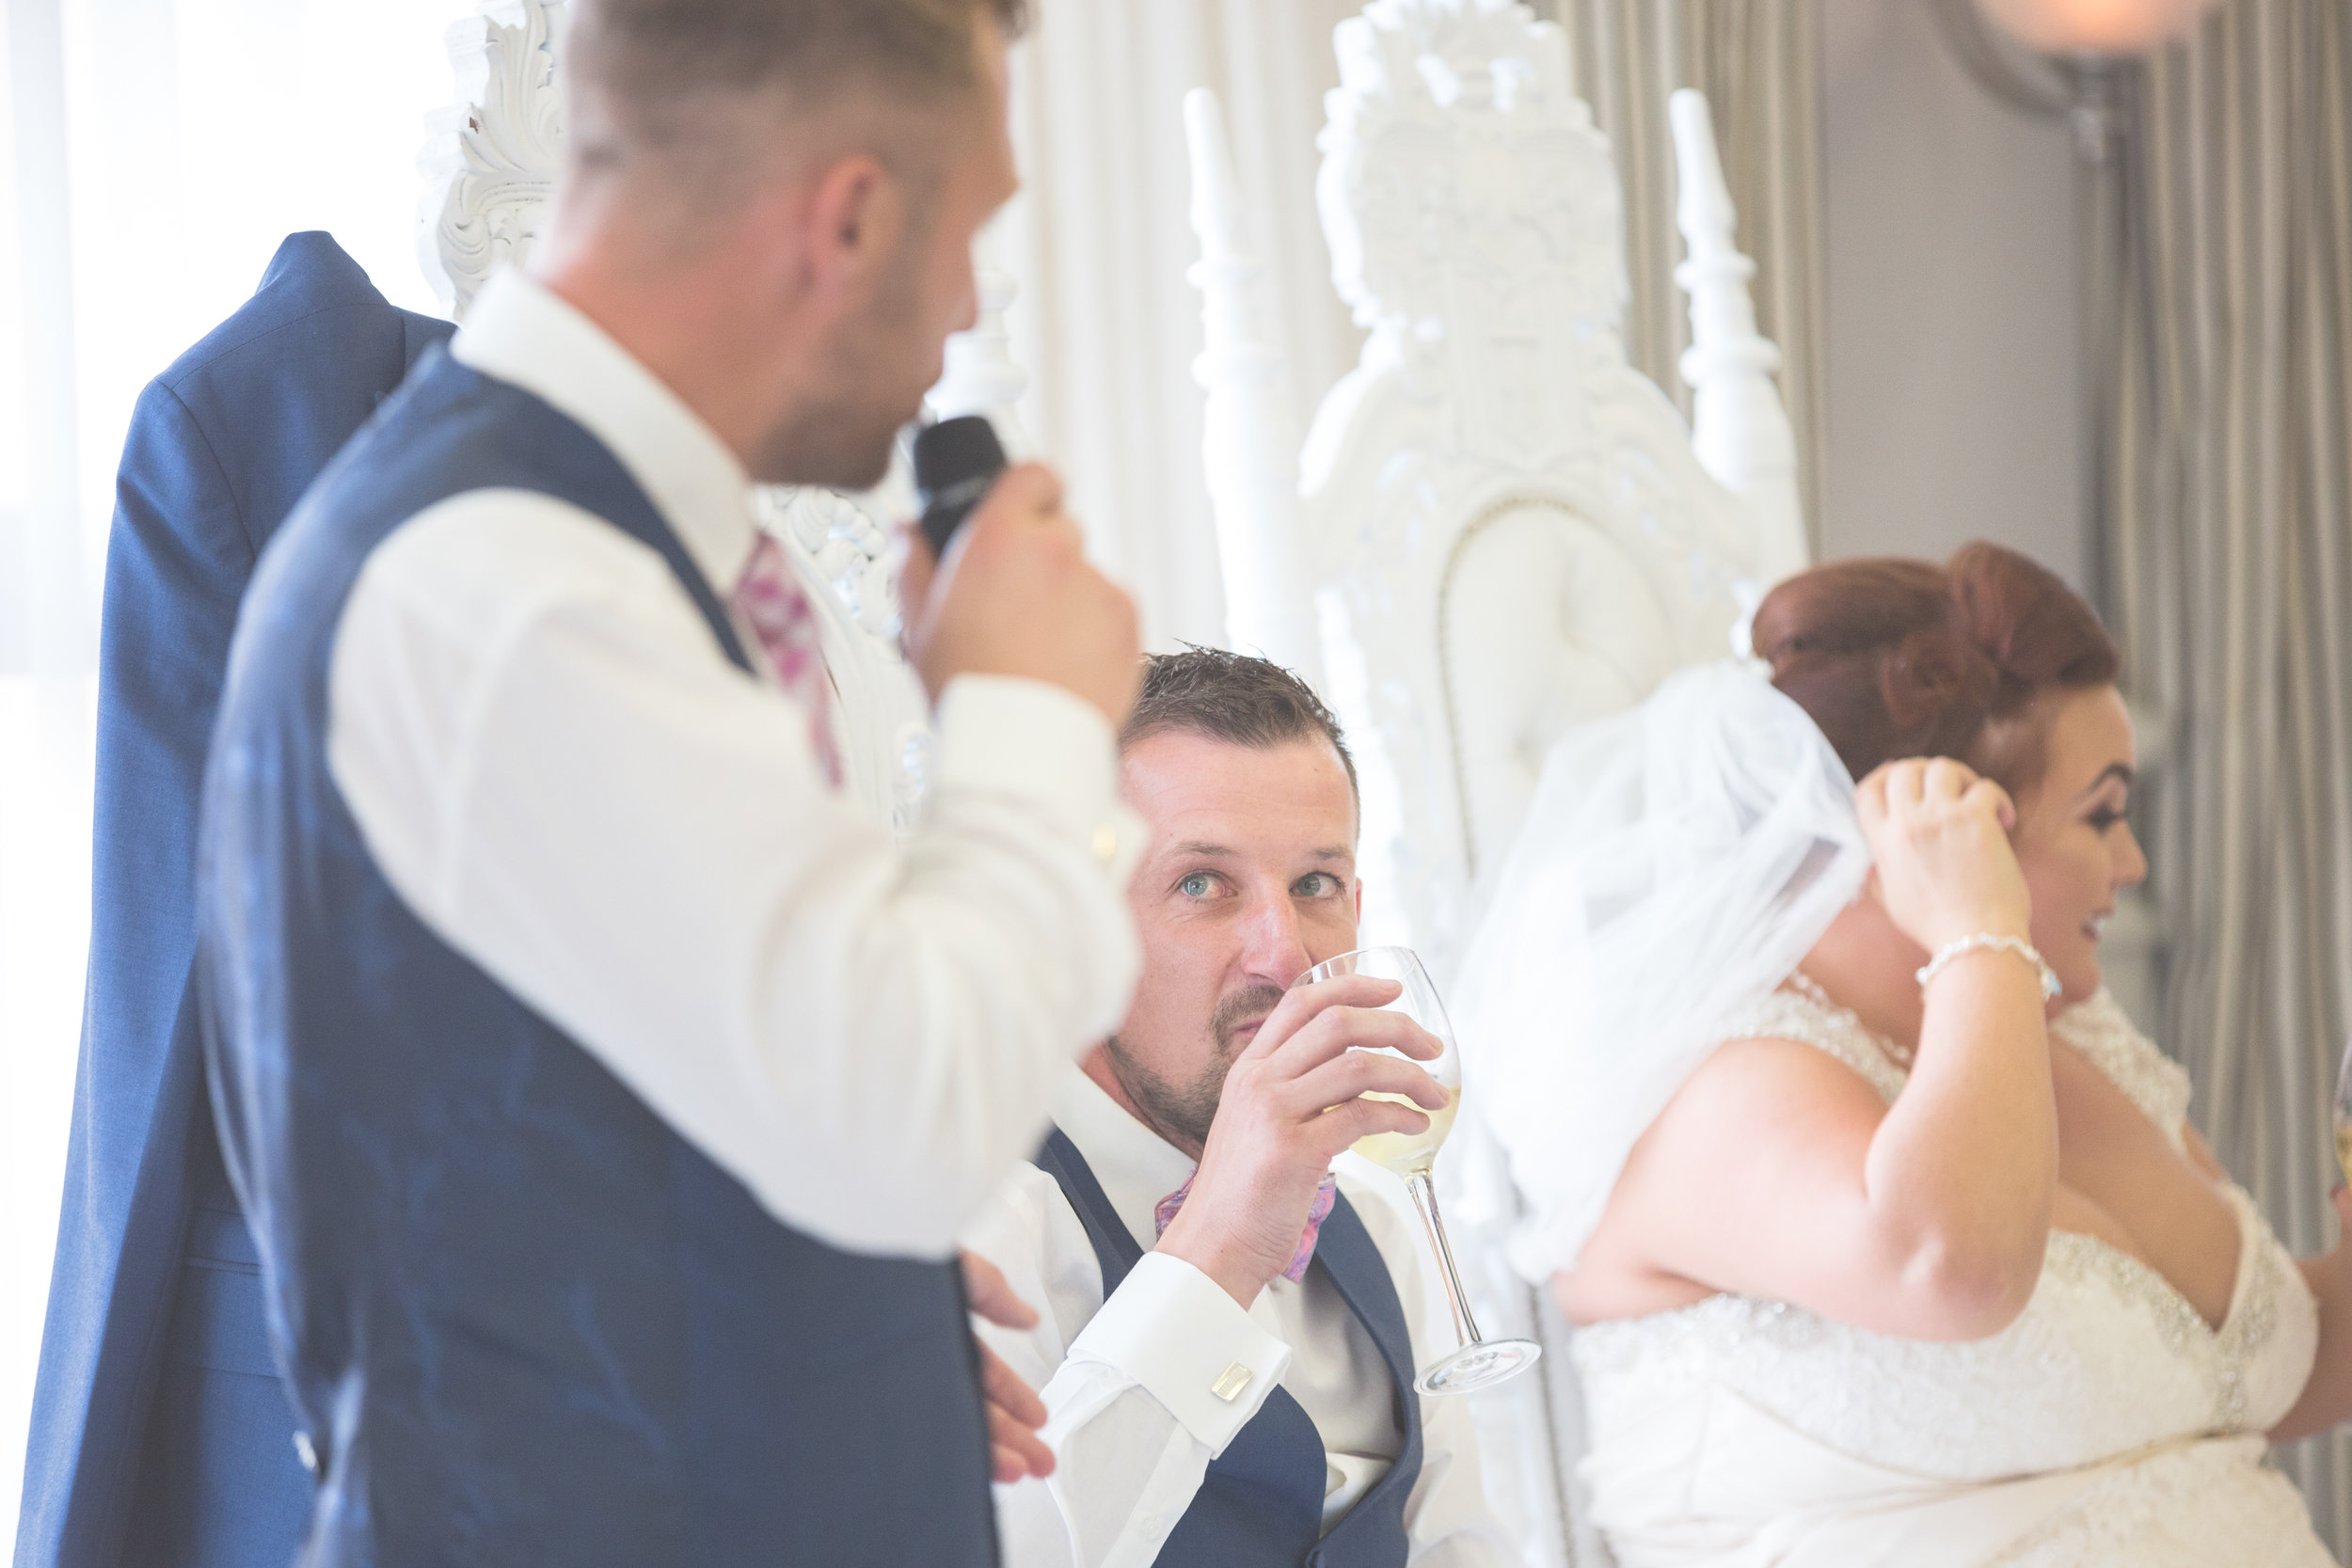 Antoinette & Stephen - Speeches | Brian McEwan Photography | Wedding Photographer Northern Ireland 96.jpg